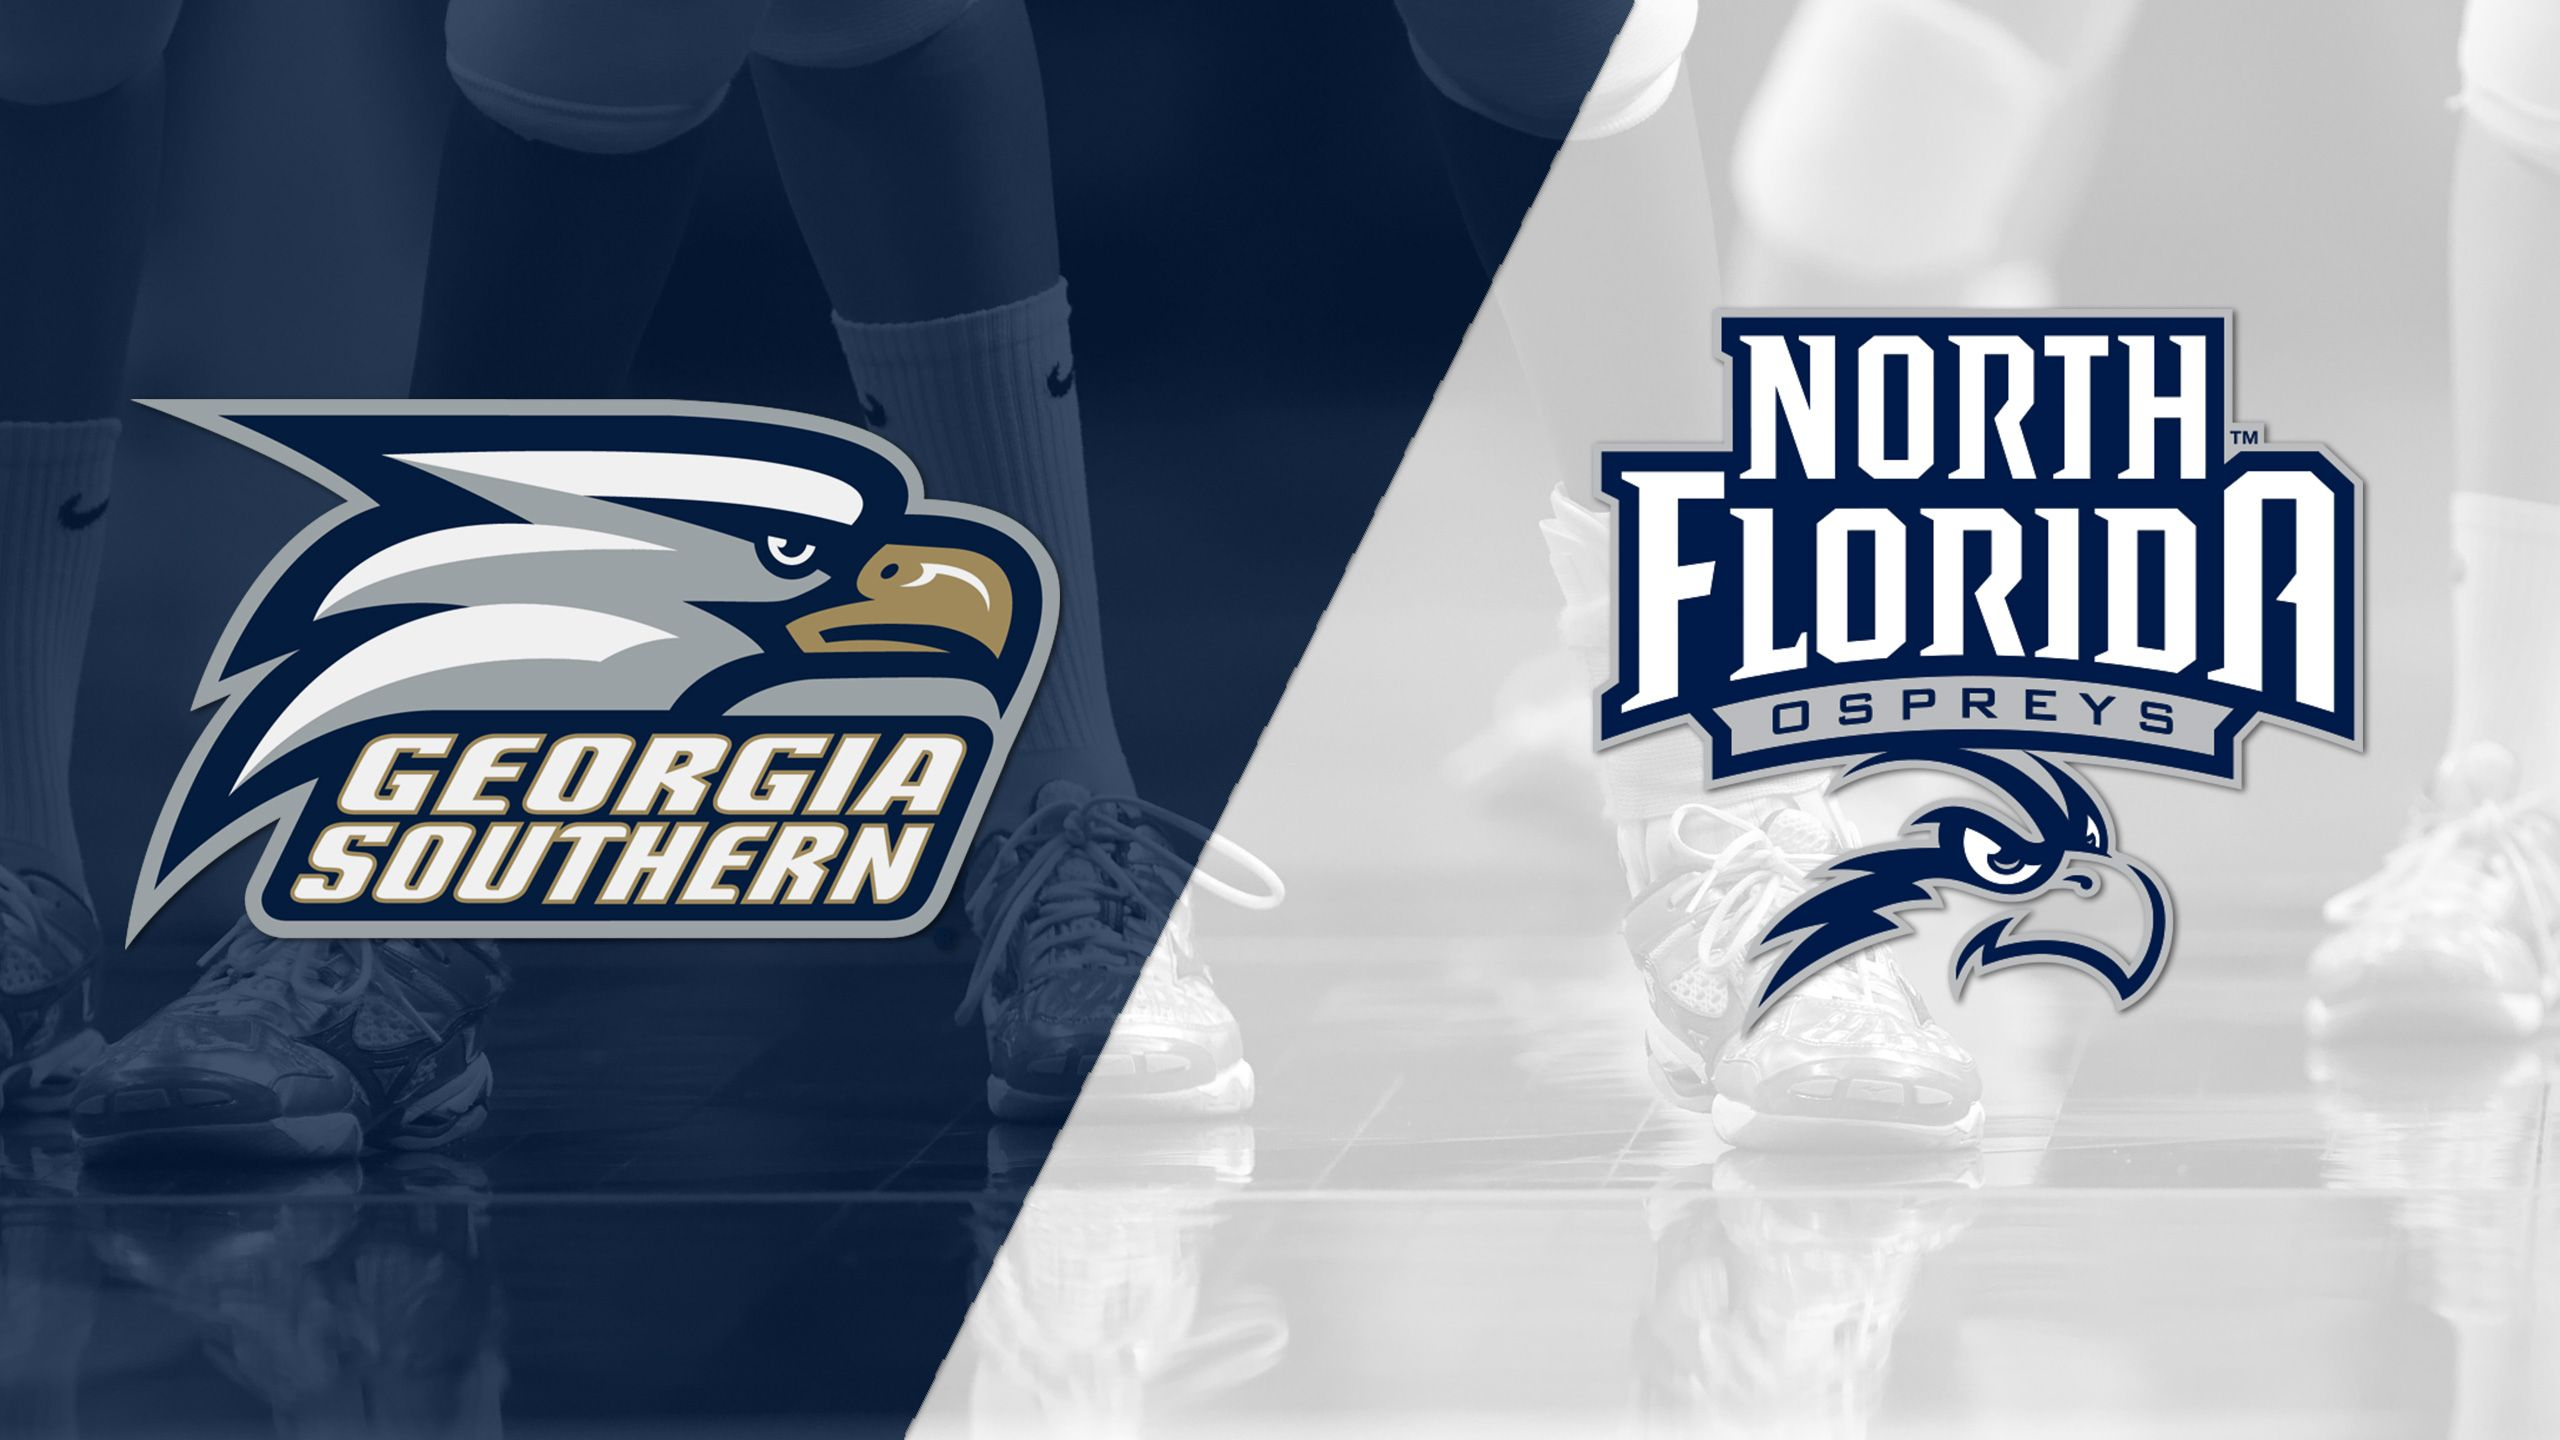 Georgia Southern vs. North Florida (W Volleyball)